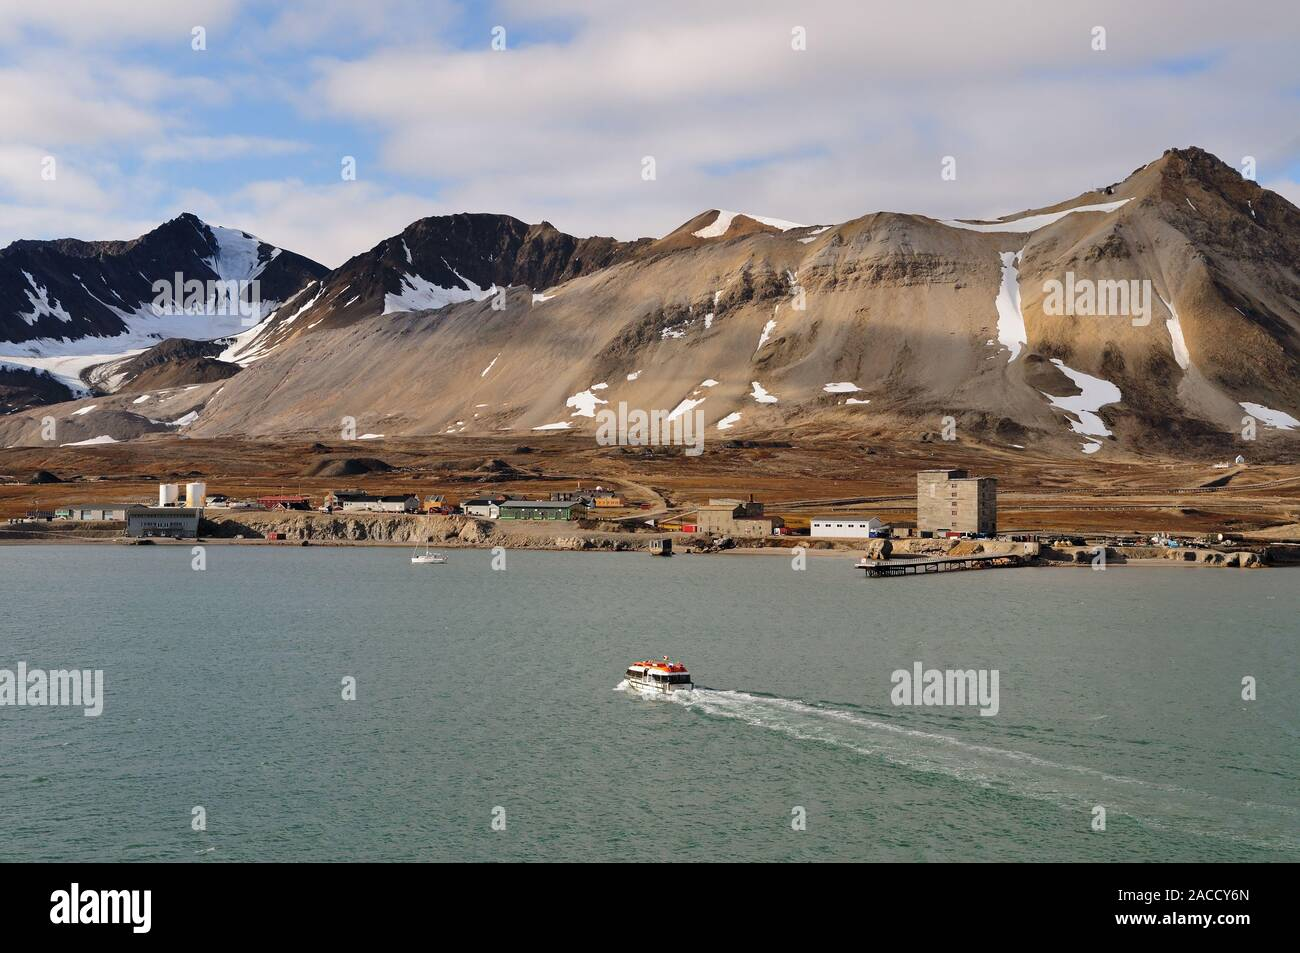 Ny Alesund, the world's most northerly inhabited settlement at latitude 78.55N, on the shoreline of the Kongsfjorden (King's Bay), Spitsbergen. Stock Photo